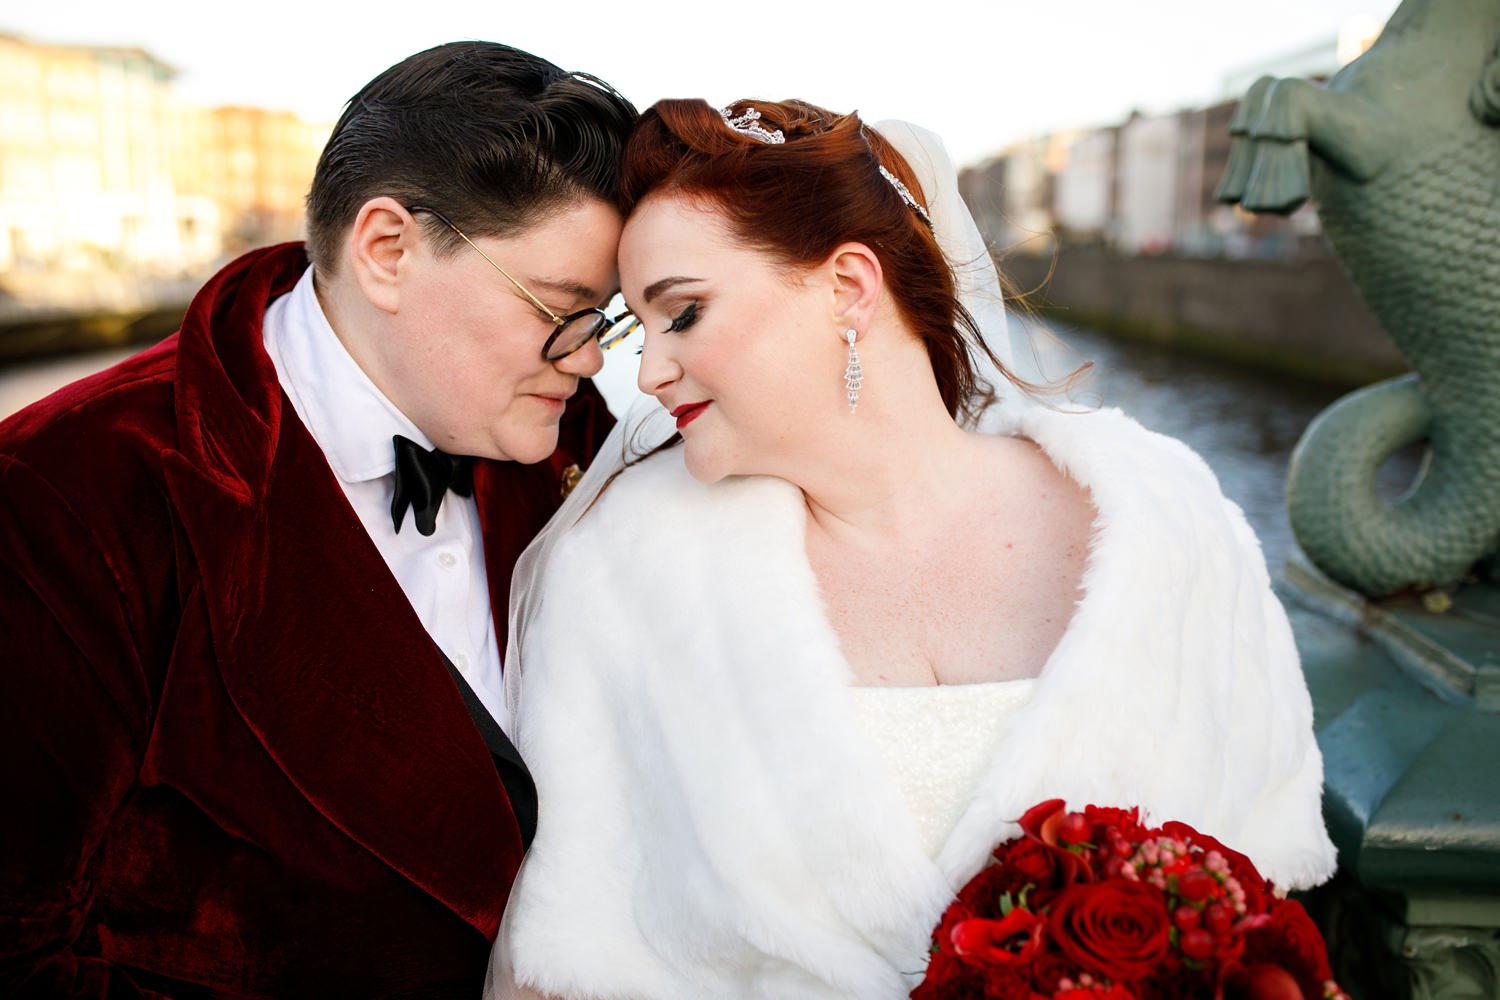 Elisha-Clarke-Photography-Dublin-City-Wedding_00270.jpg